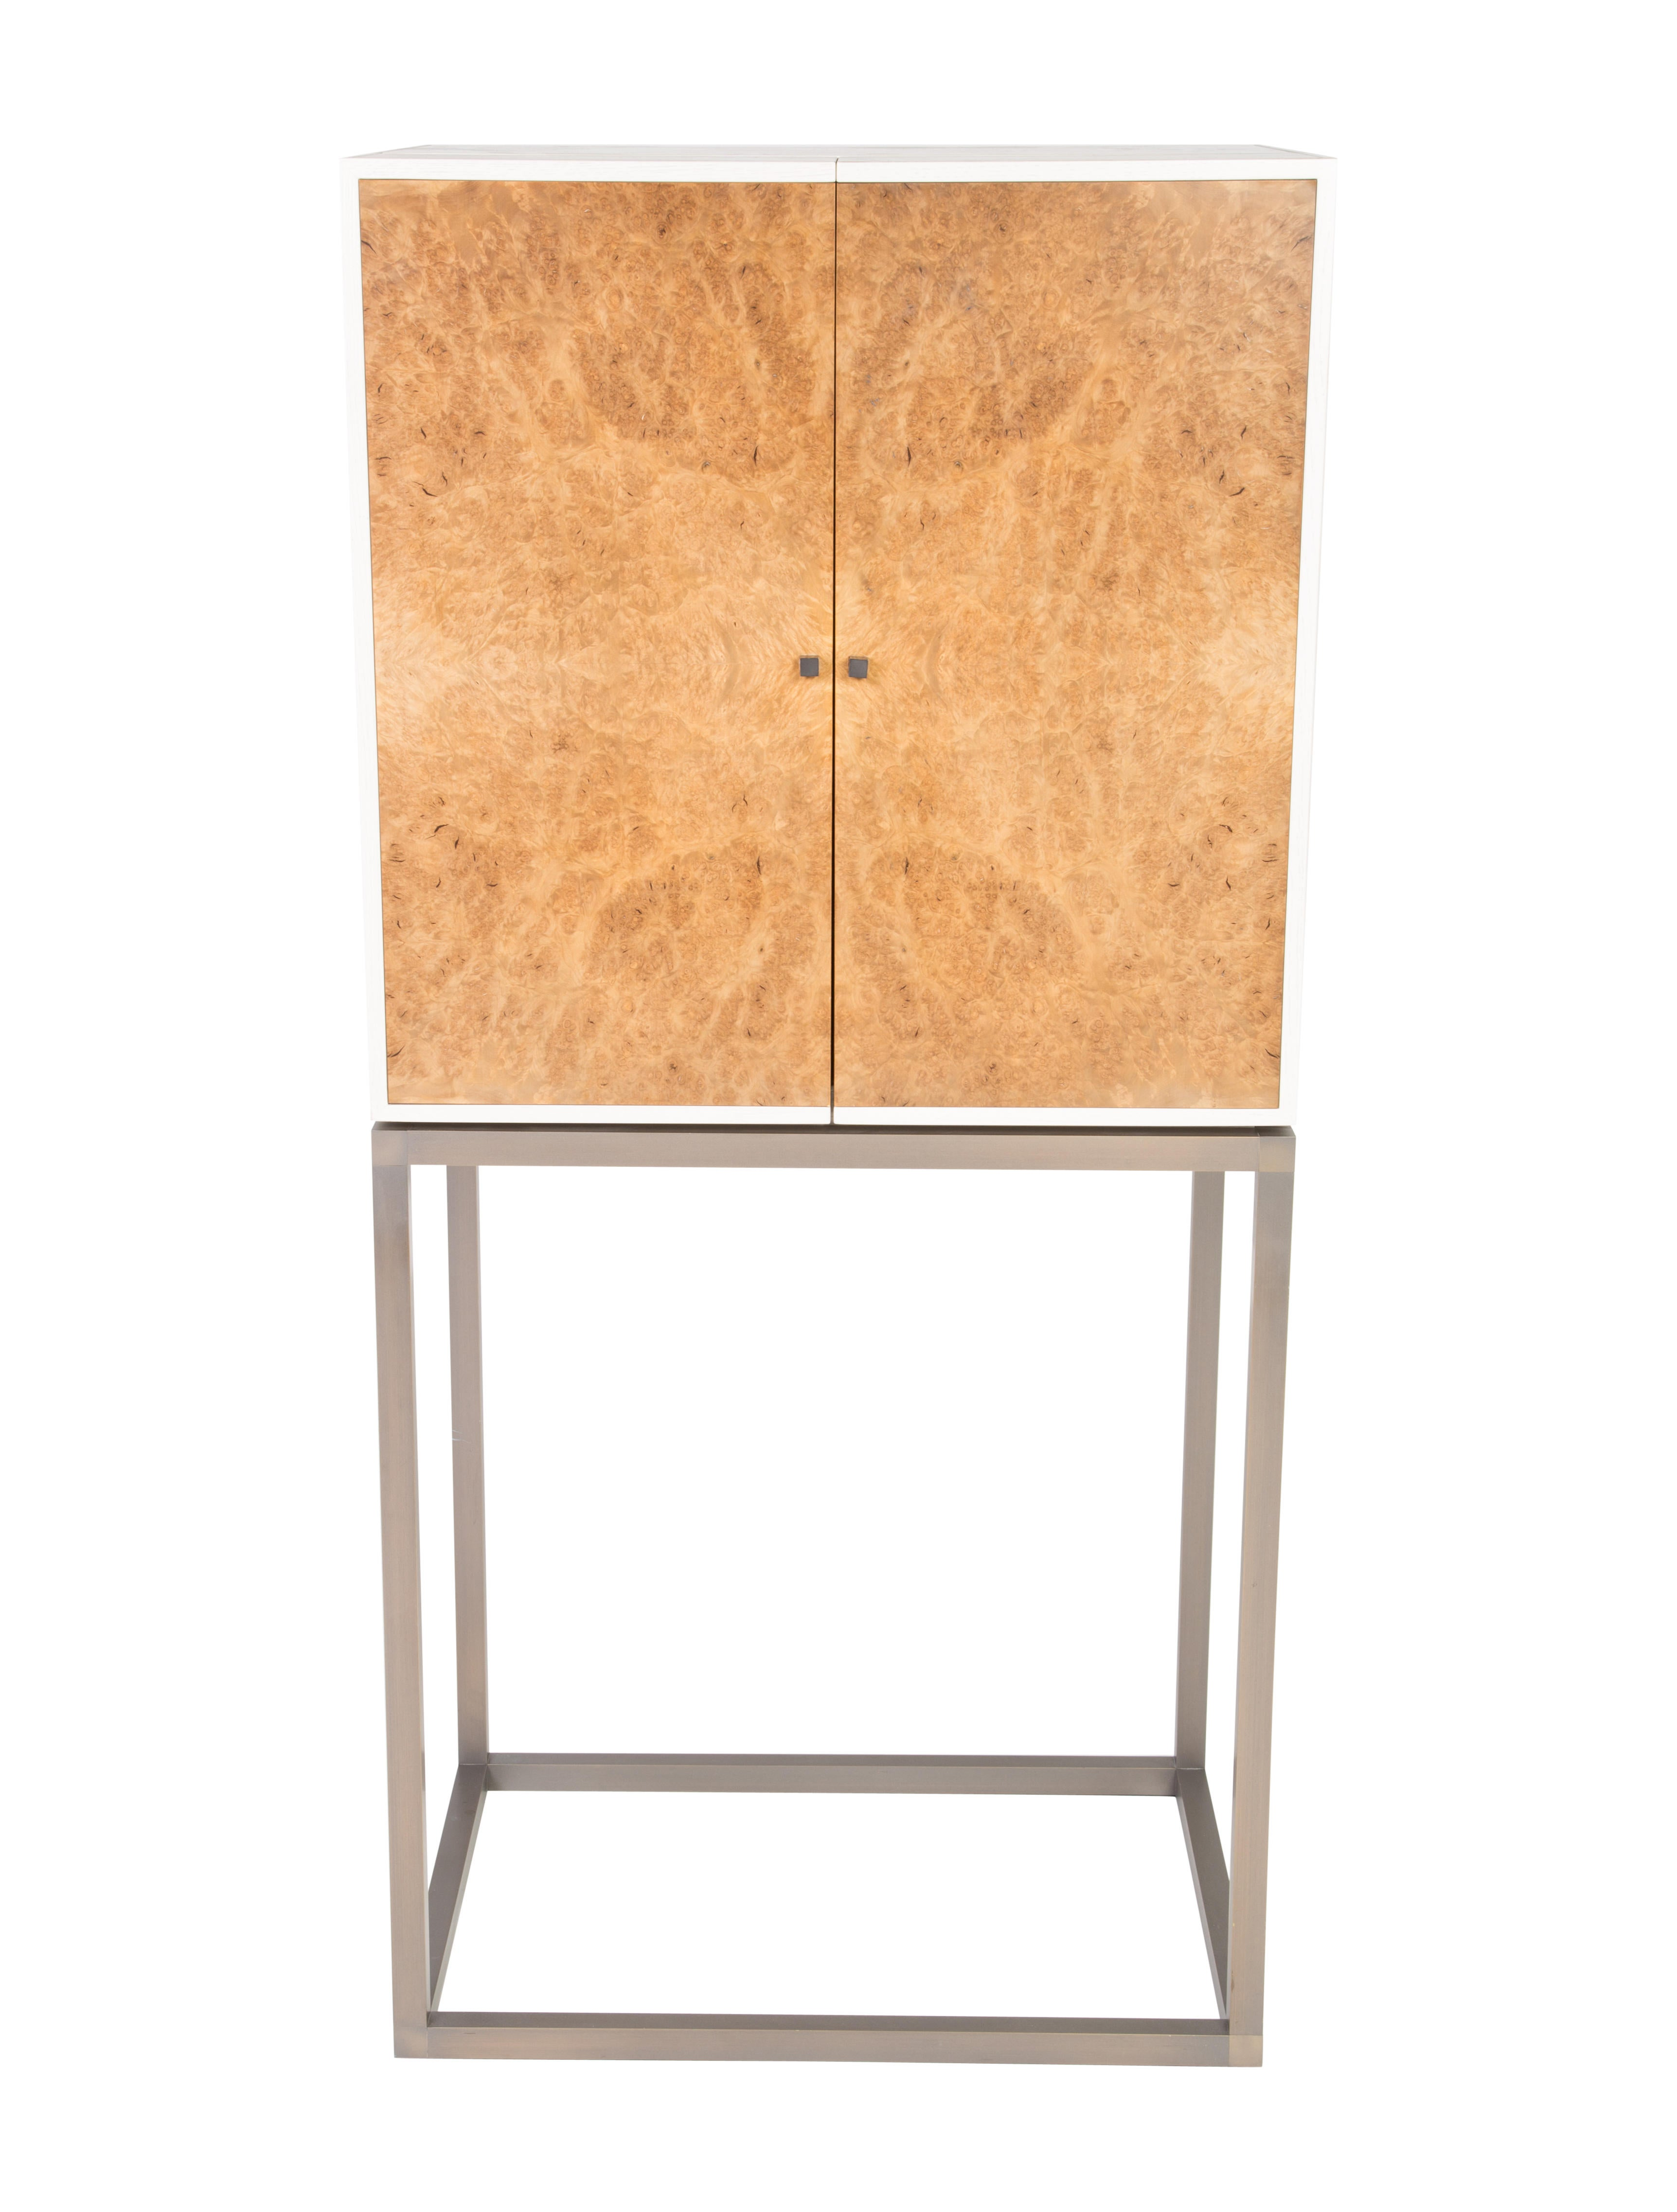 Armani Casa Riesling Bar Cabinet Furniture ACASA